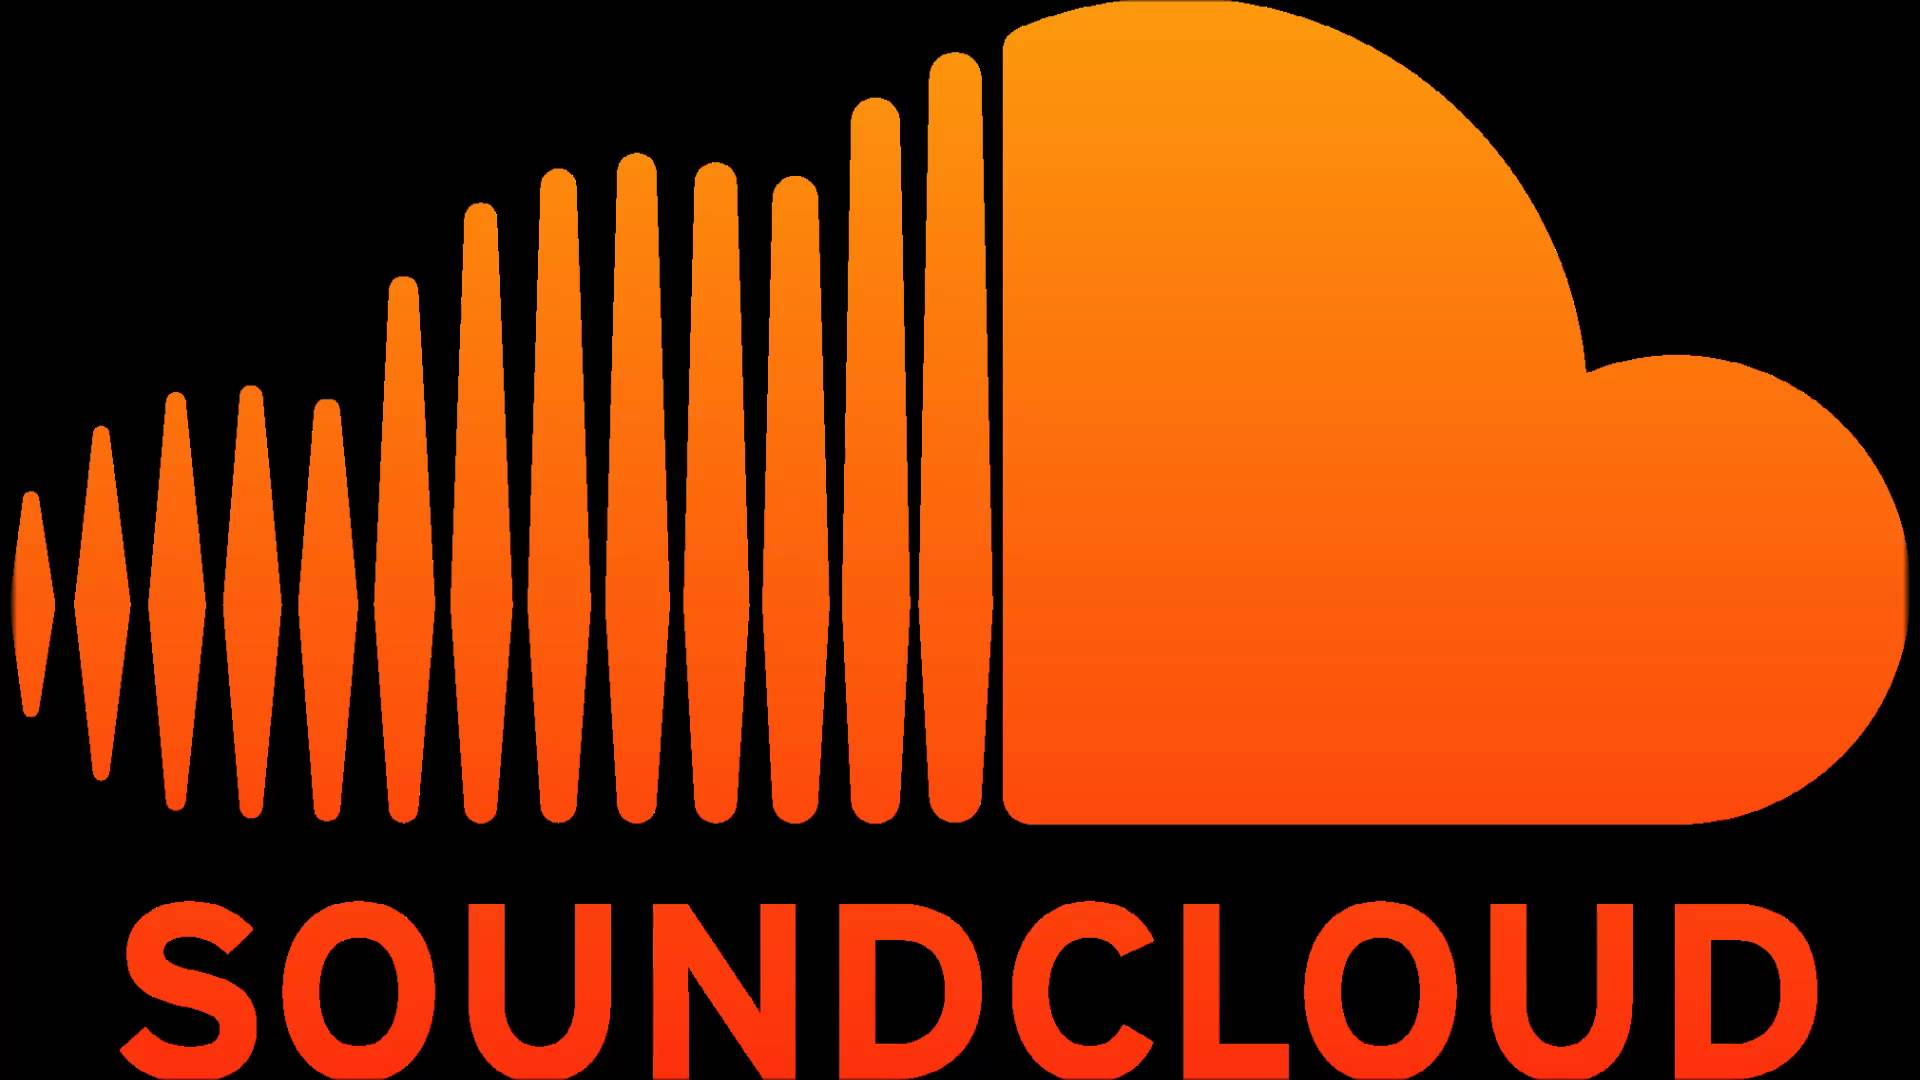 Instant 300+ soundcloud Followers or Likes or Reposts